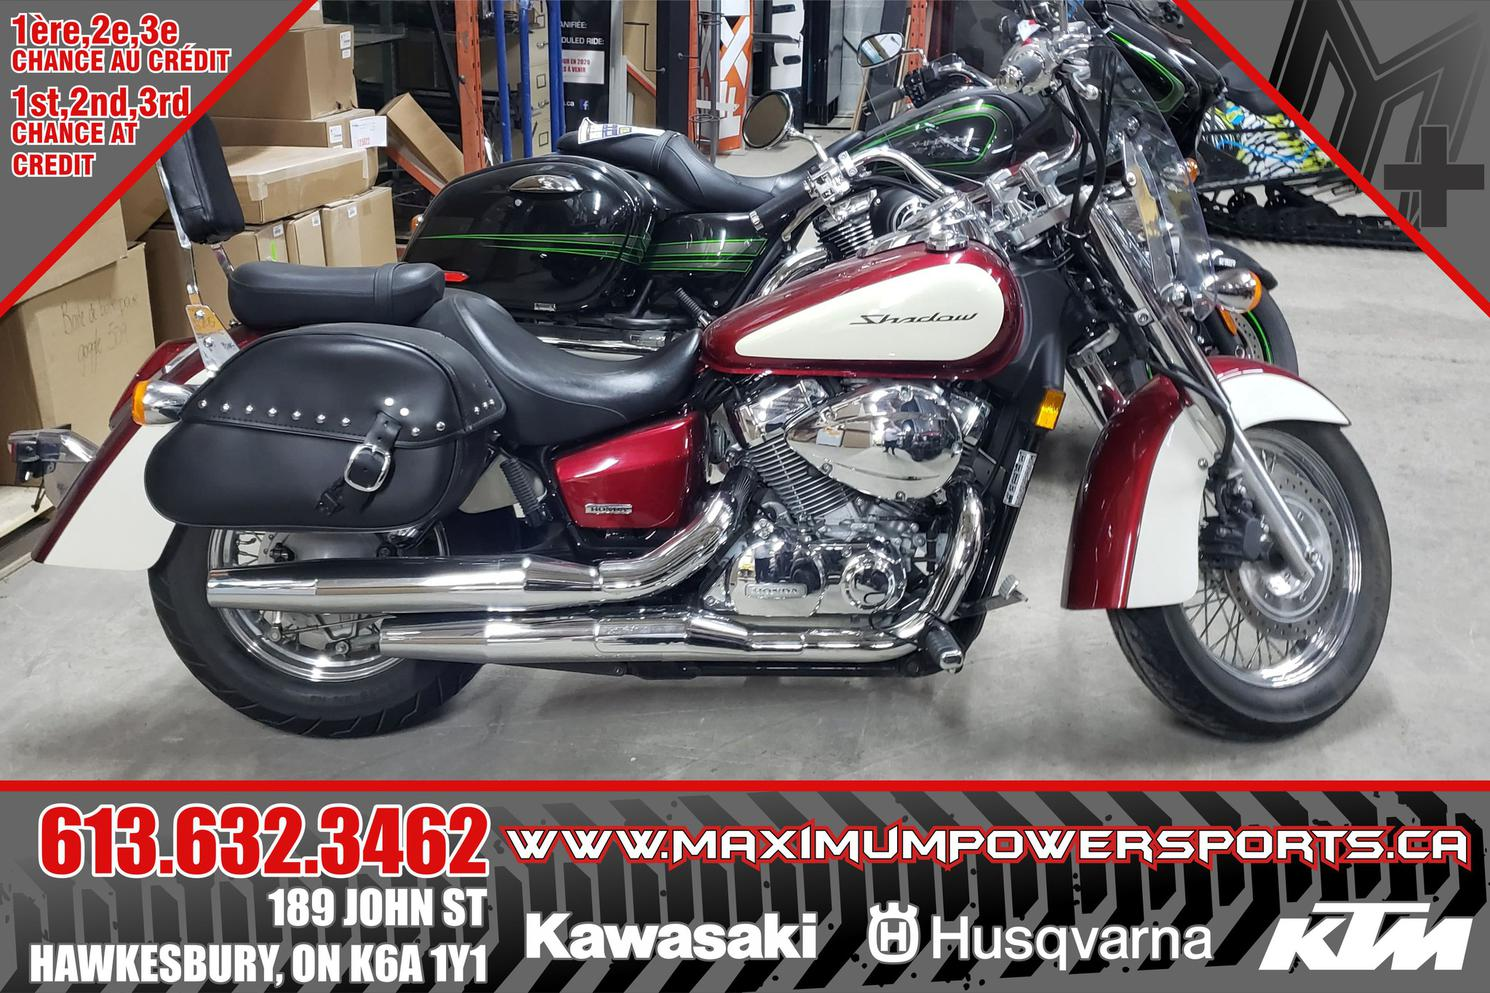 Honda SHADOW 750 - SHADOW 750 2008